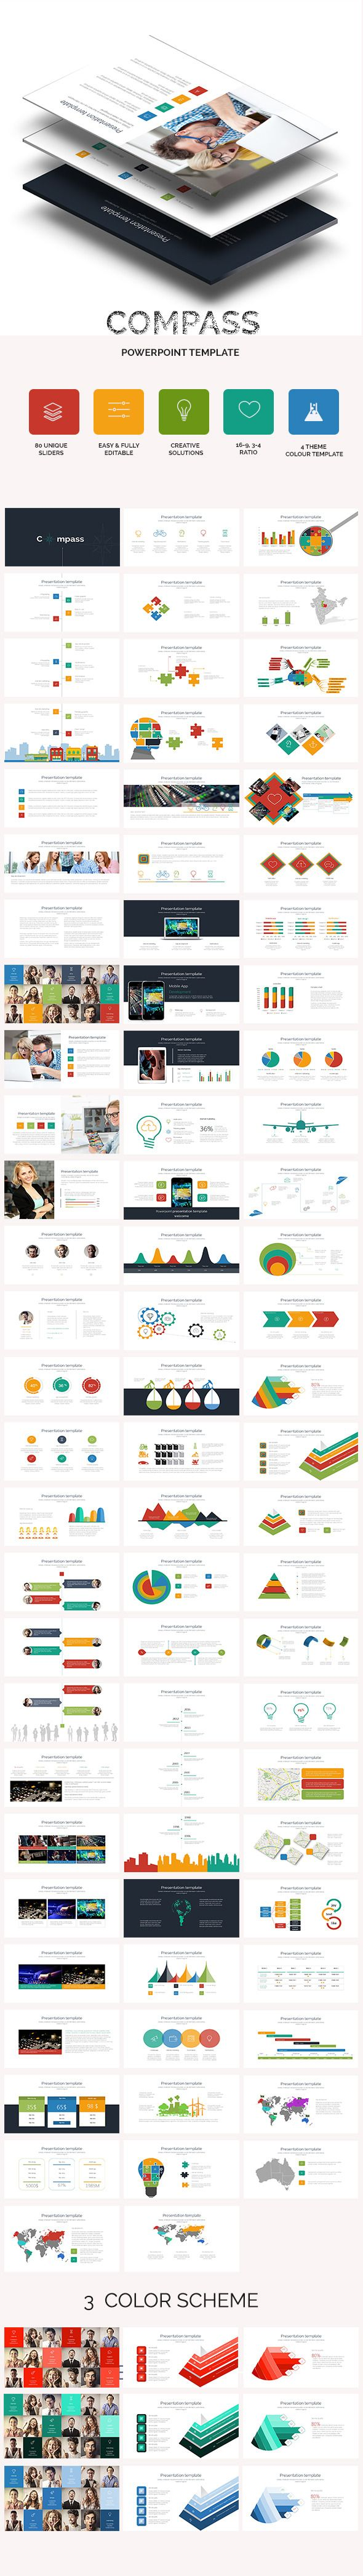 Compass Business PowerPoint Presentation Template #powerpoint #design #slides Download: http://graphicriver.net/item/compass-business-powerpoint-presentation-template/10862478?ref=ksioks